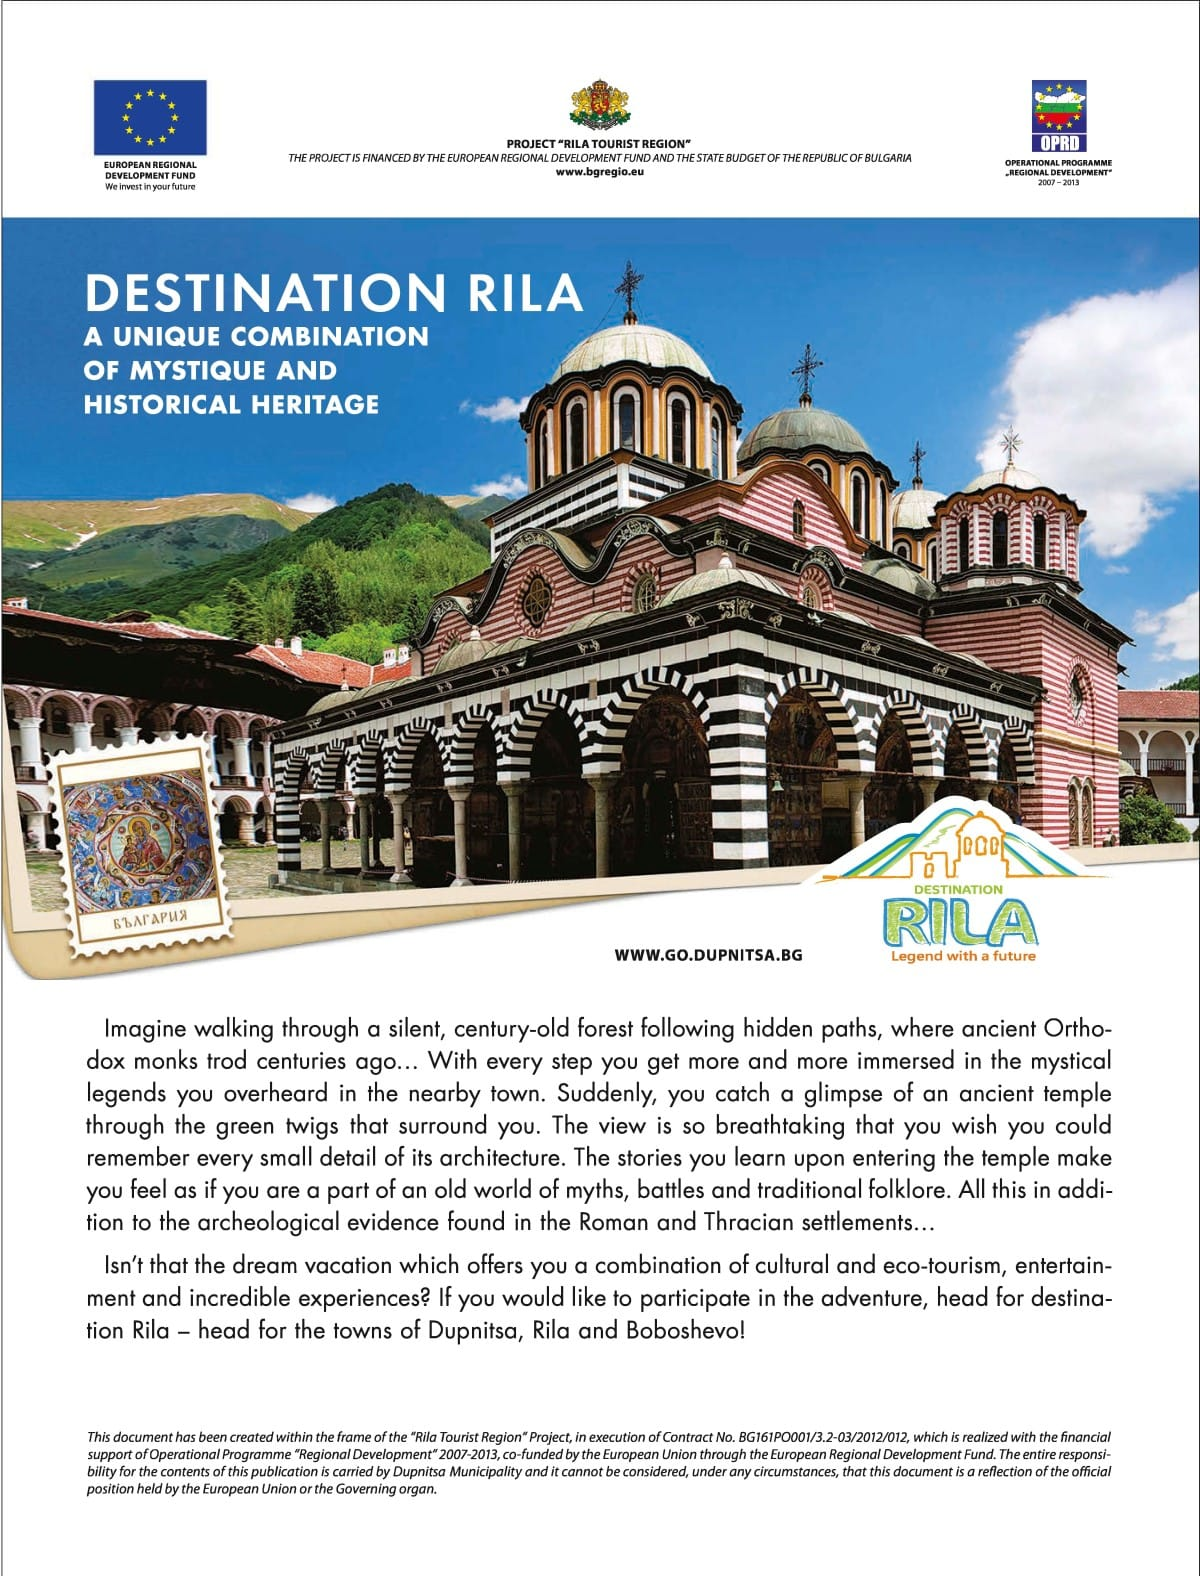 6519_RLA_Press_Travel Weekly_ENGL-MONASTERY_226x300_AM